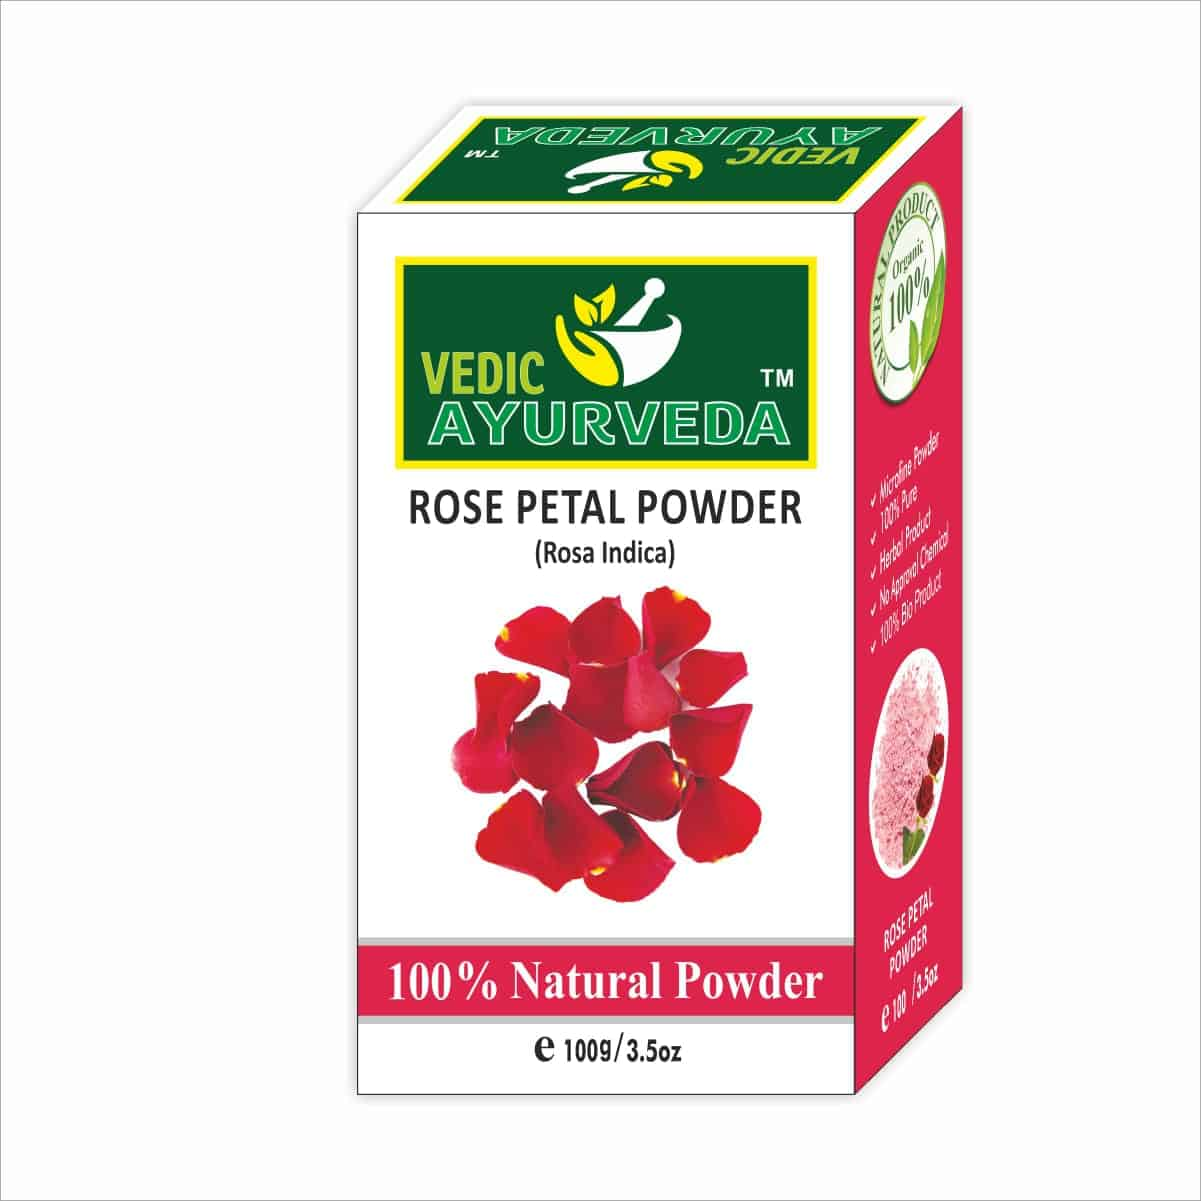 vedicayurvedas Rose petal powder